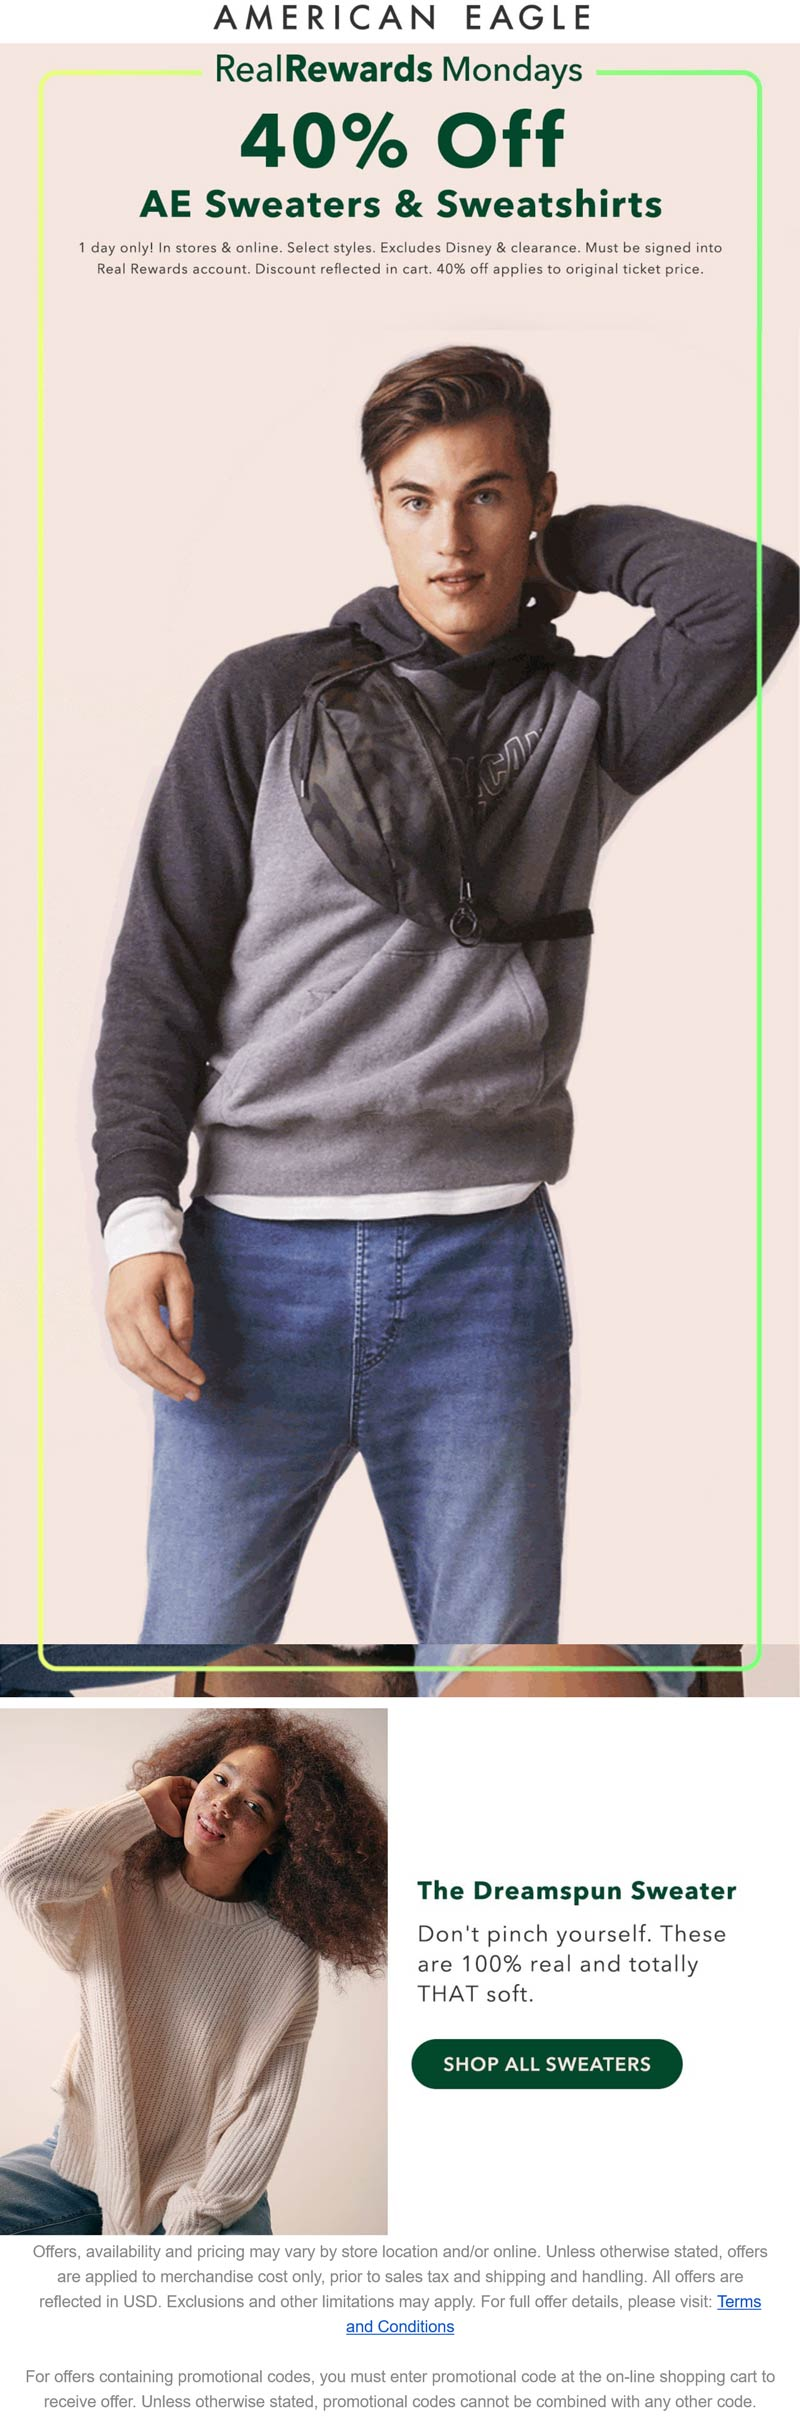 American Eagle stores Coupon  40% off sweaters & sweatshirts today at American Eagle, ditto online #americaneagle